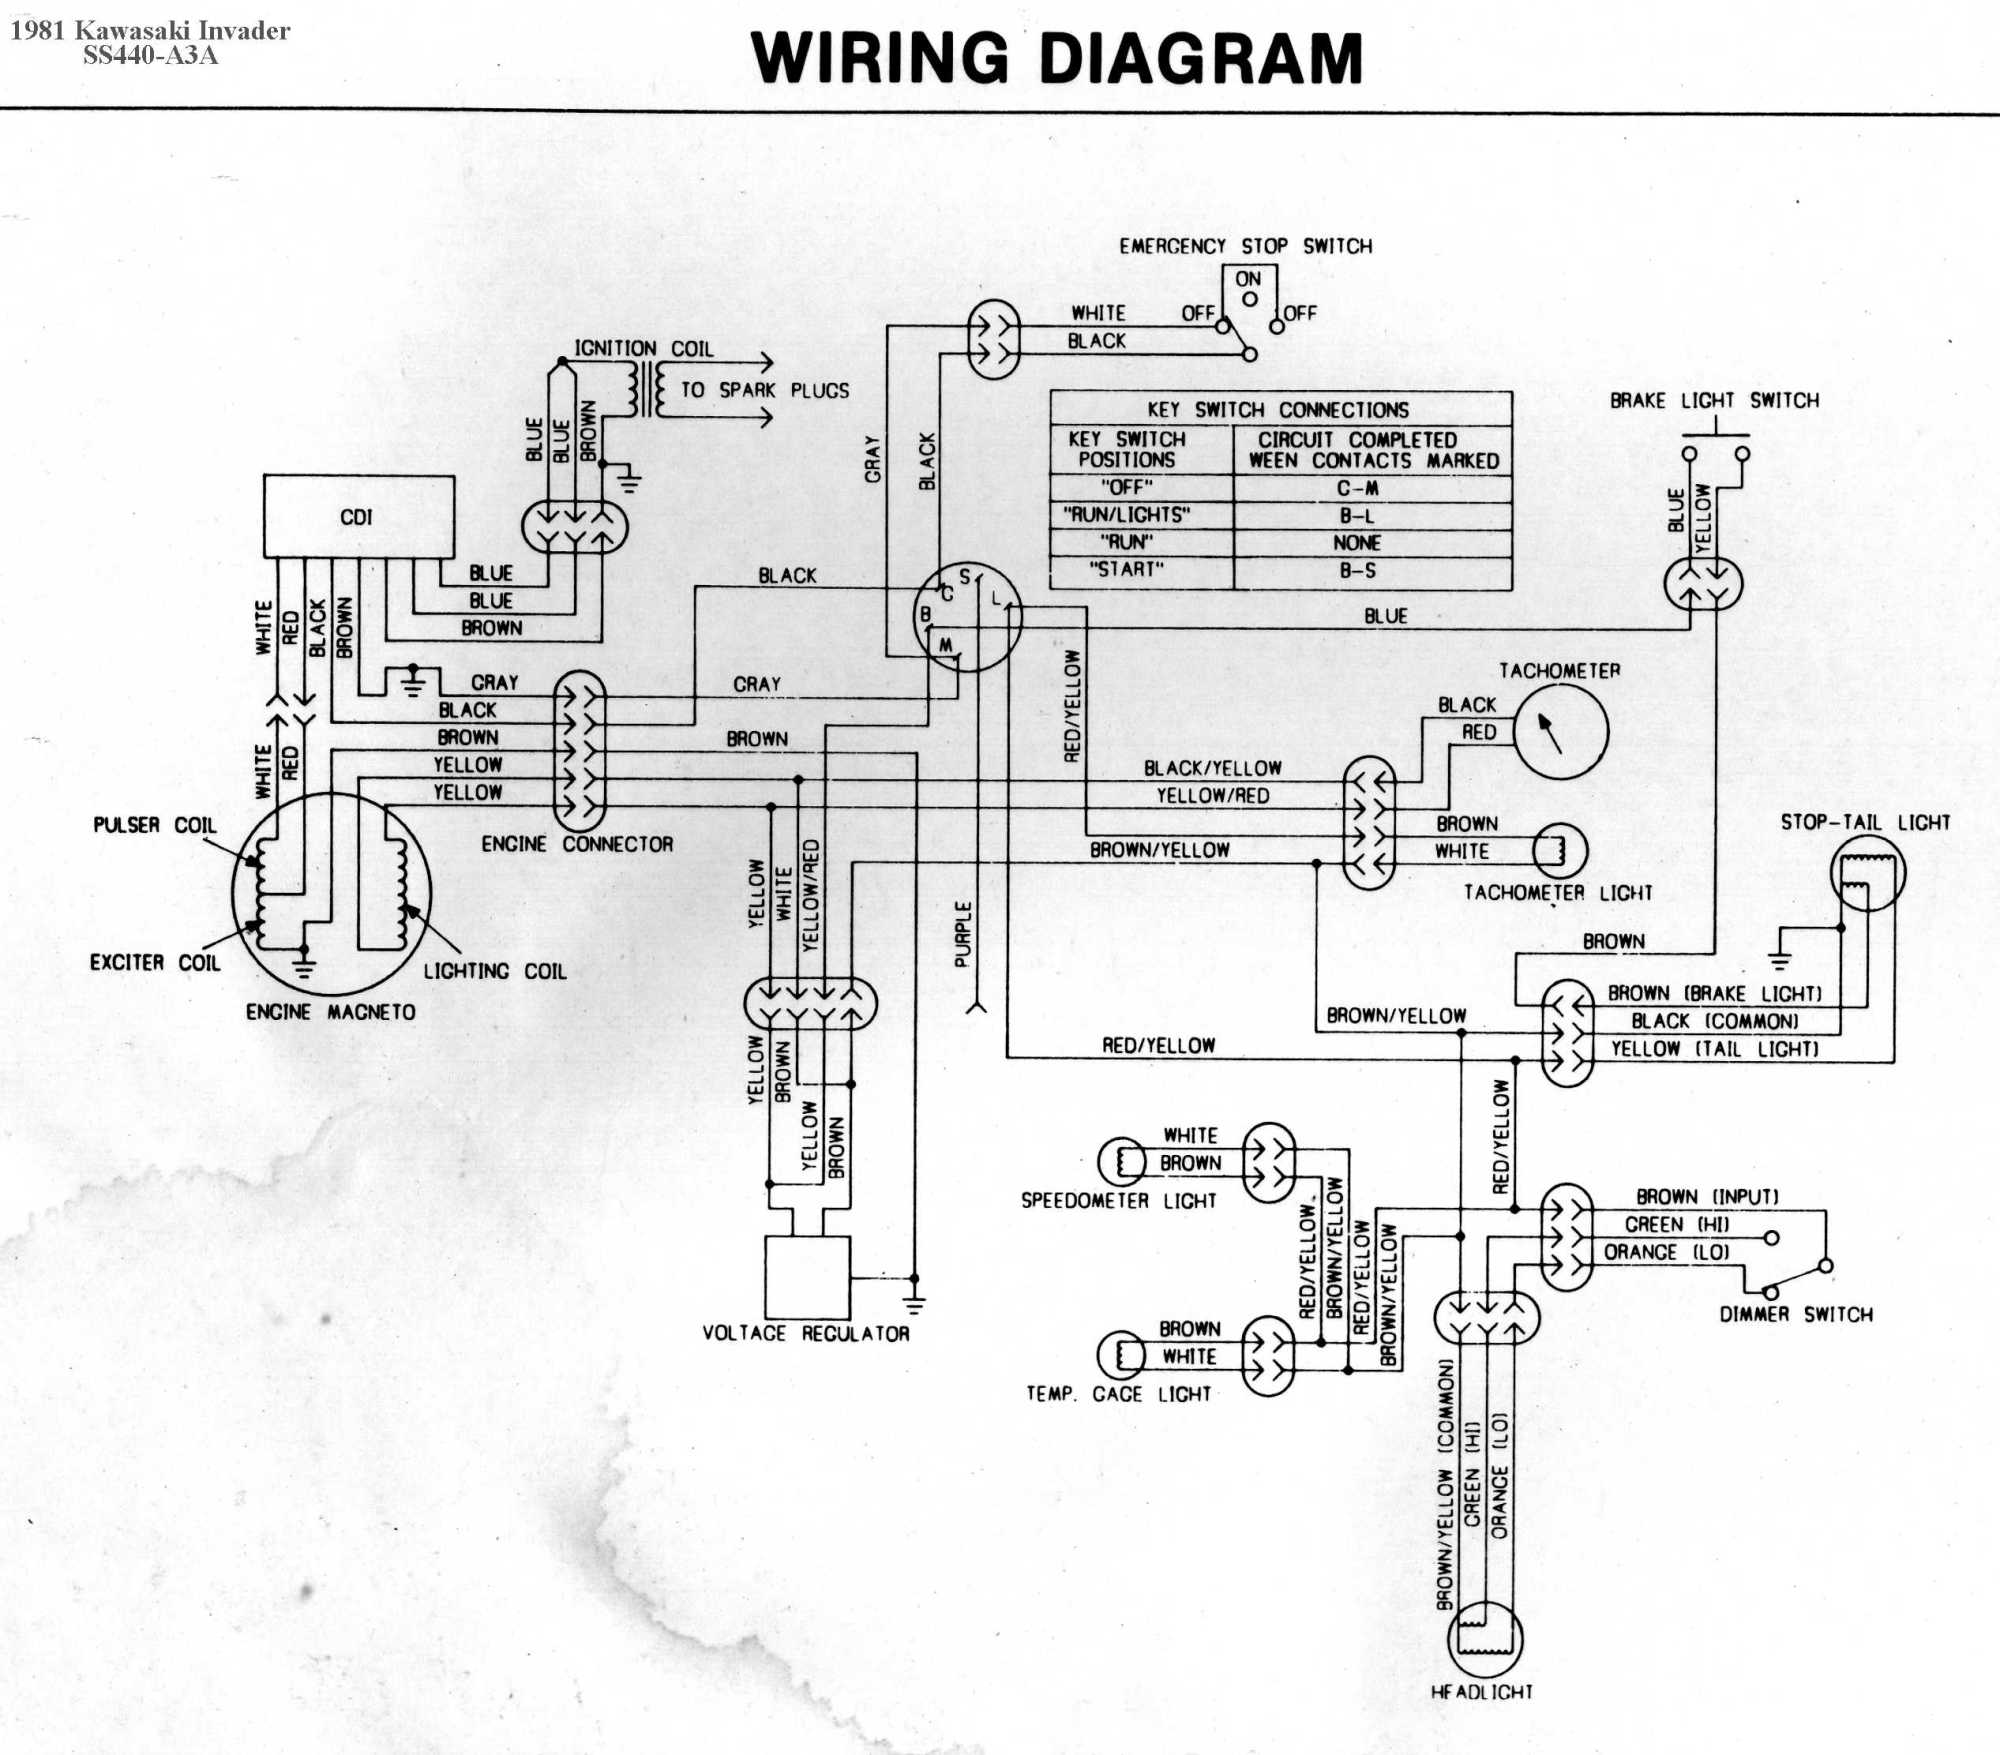 hight resolution of wiring diagram for yamaha waverunner best wiring diagram1998 yamaha waverunner diagram wiring schematic wiring diagrams mon